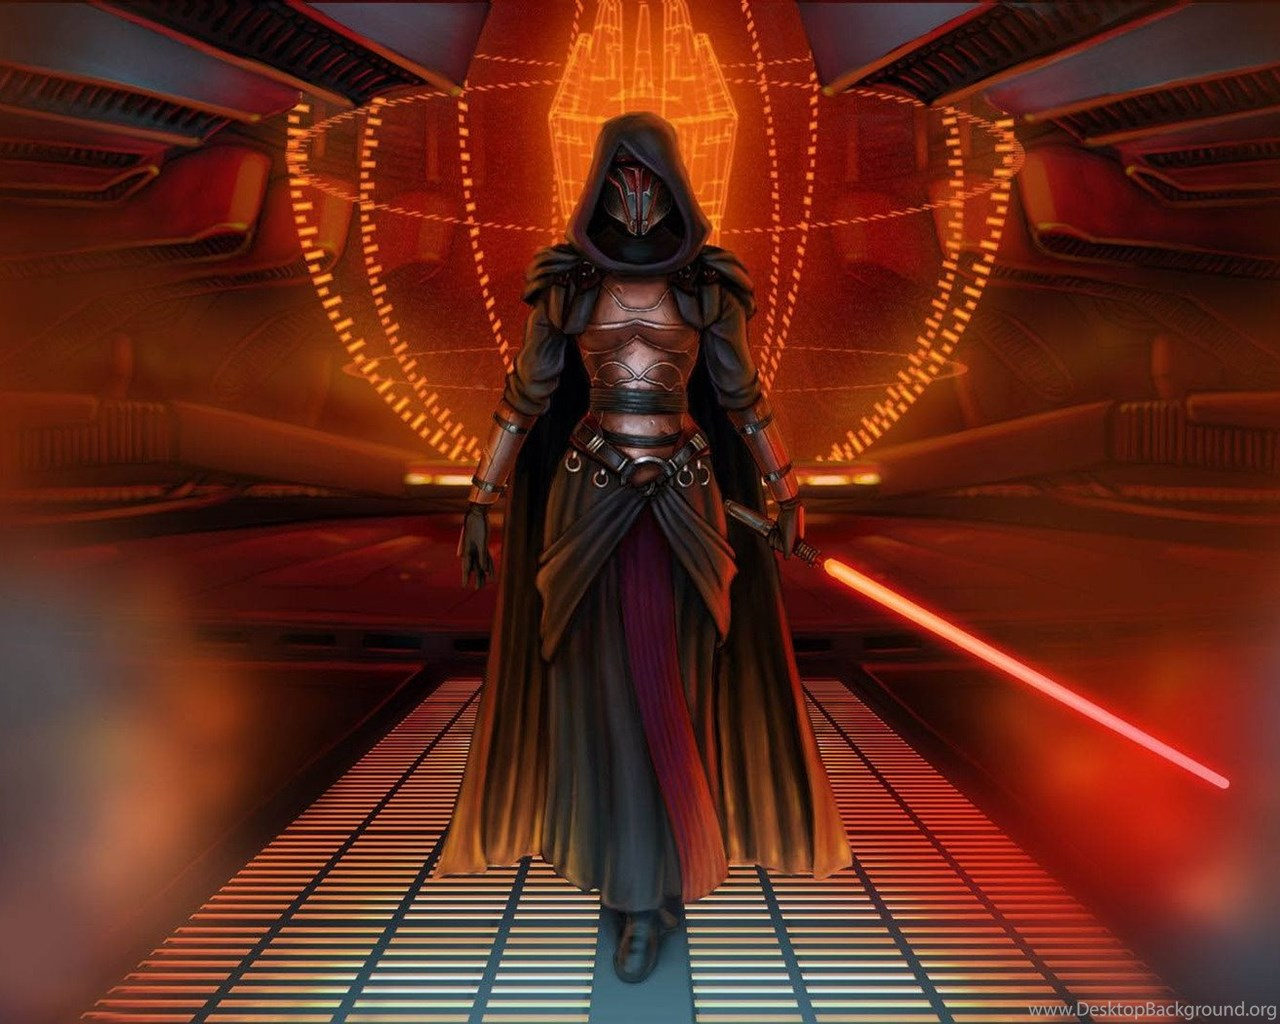 Free download star wars knights of the old republic for mac osx